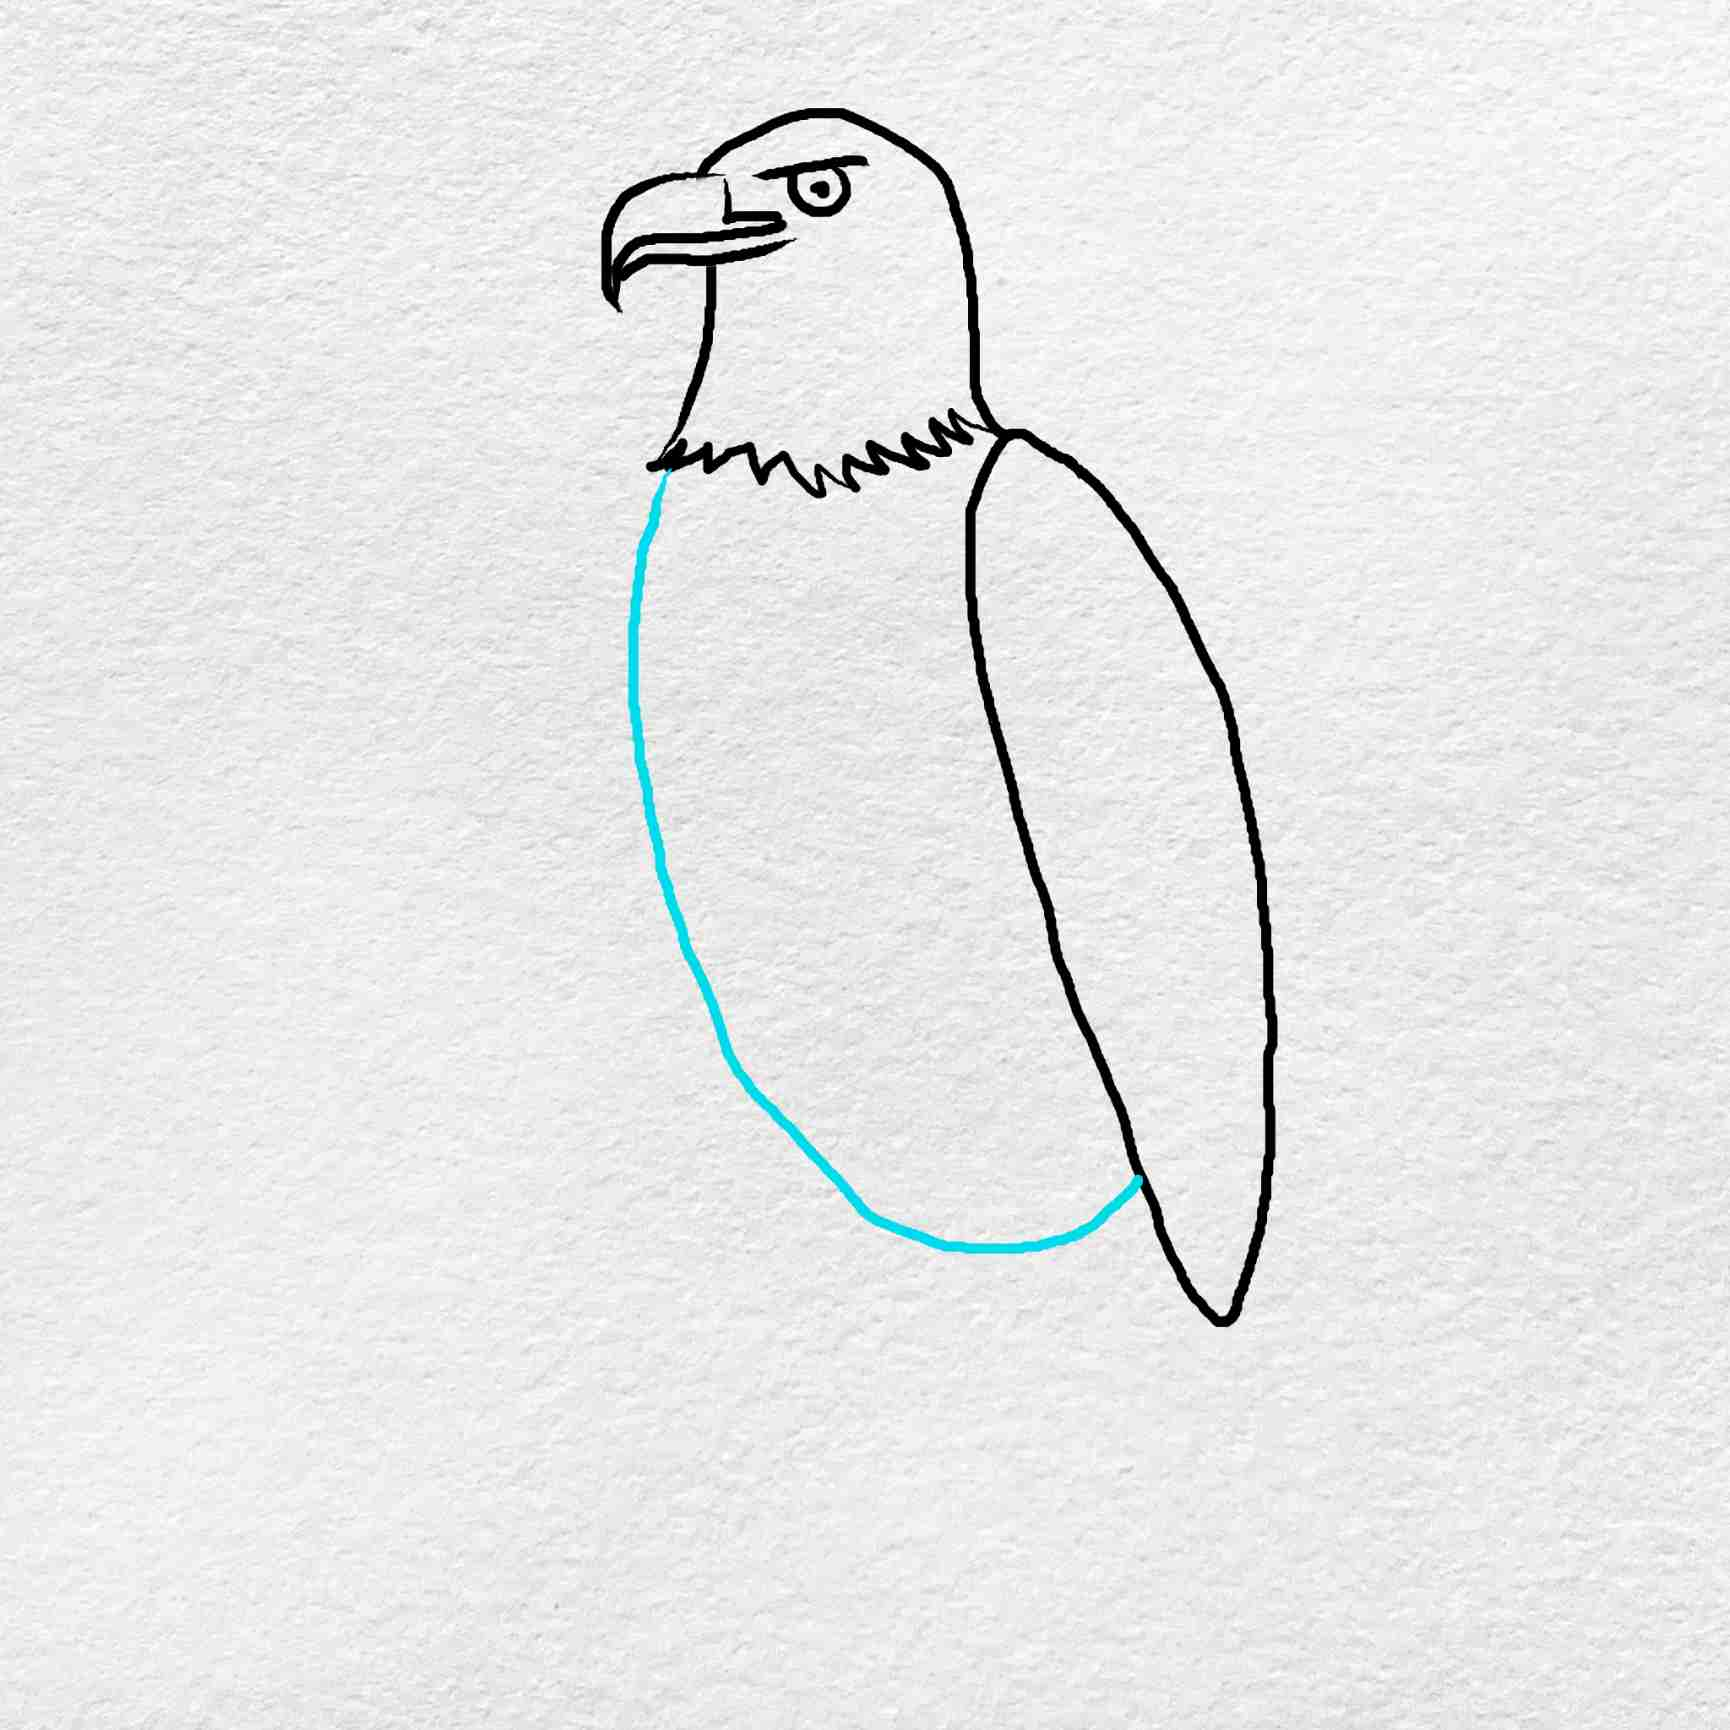 How To Draw An Eagle Easy: Step 4